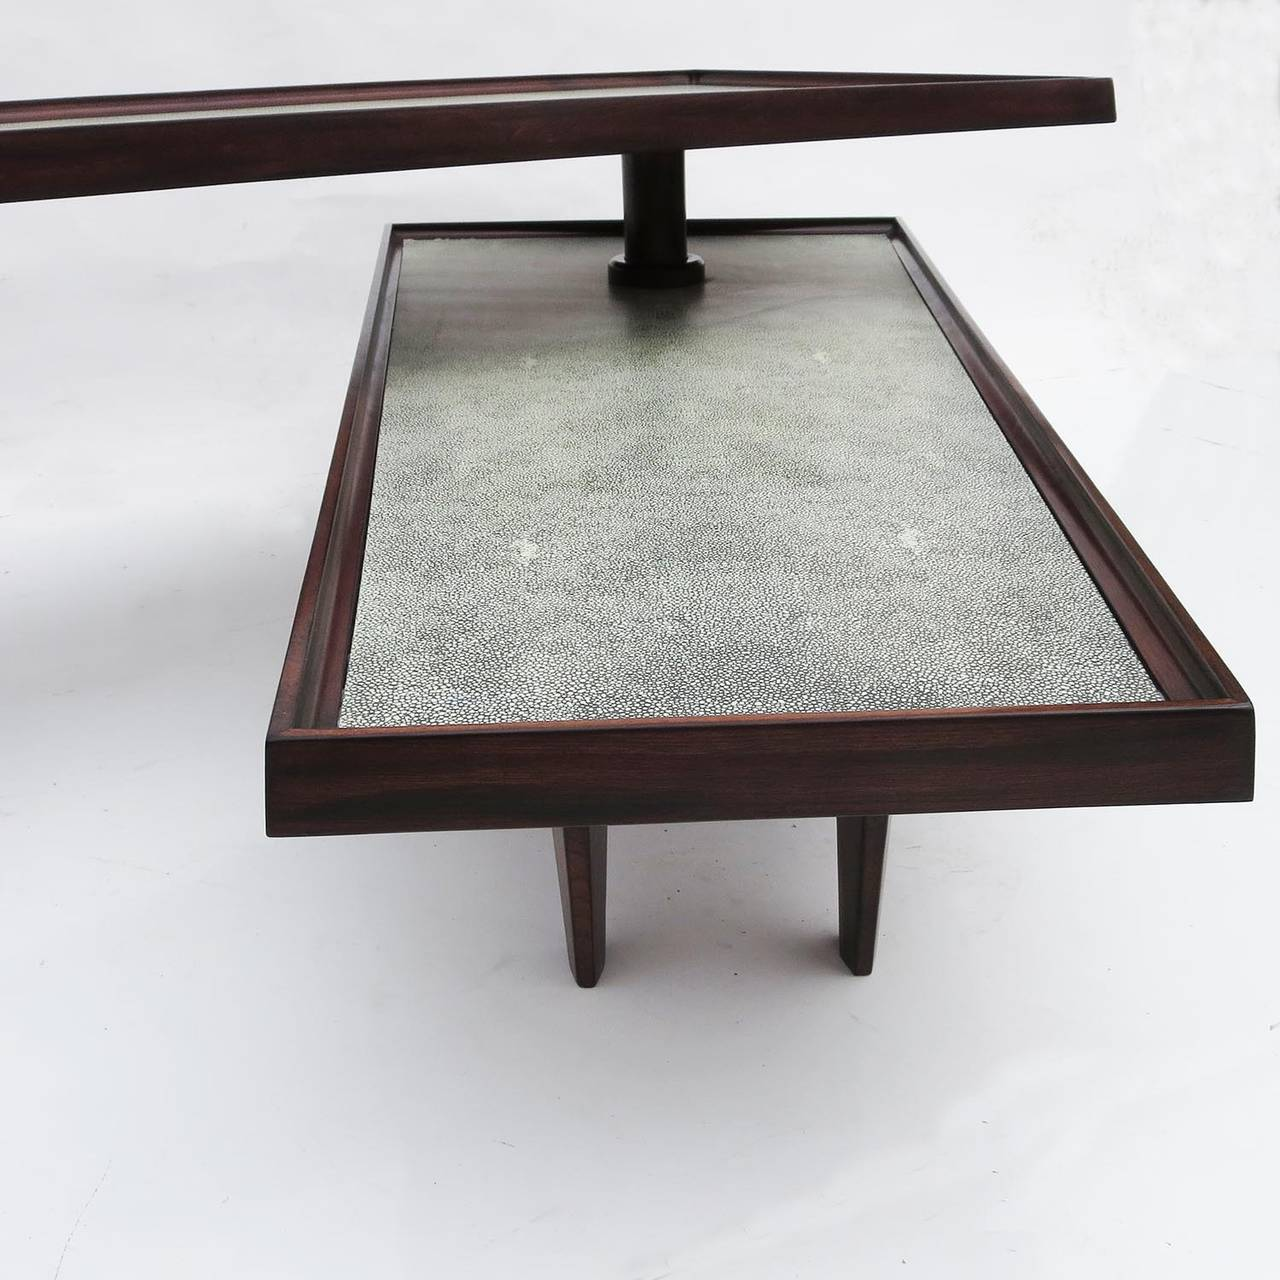 Modern coffee table with swing out level for sale at 1stdibs for Modern coffee table sale